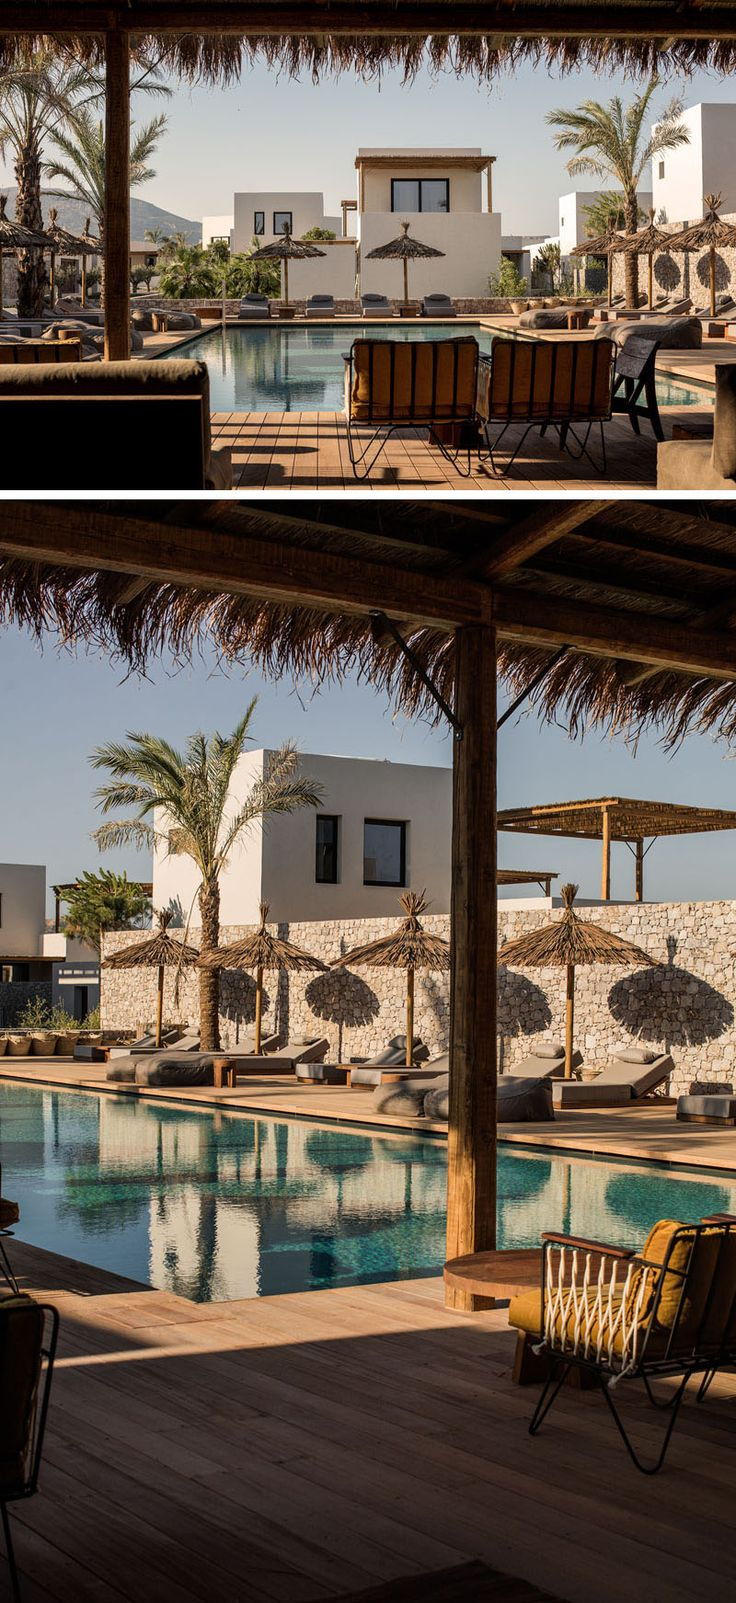 Casa Cook Hotel On The Island Of Kos In Greece | the design of the hotel was a collaboration between Remo Masala (Group Creative Director of Thomas Cook), Michael Schickinger from design agency Lambs and Lions, Berlin-based Interior Designer Annabell Kutucu and the locally-based architecture firm ARC